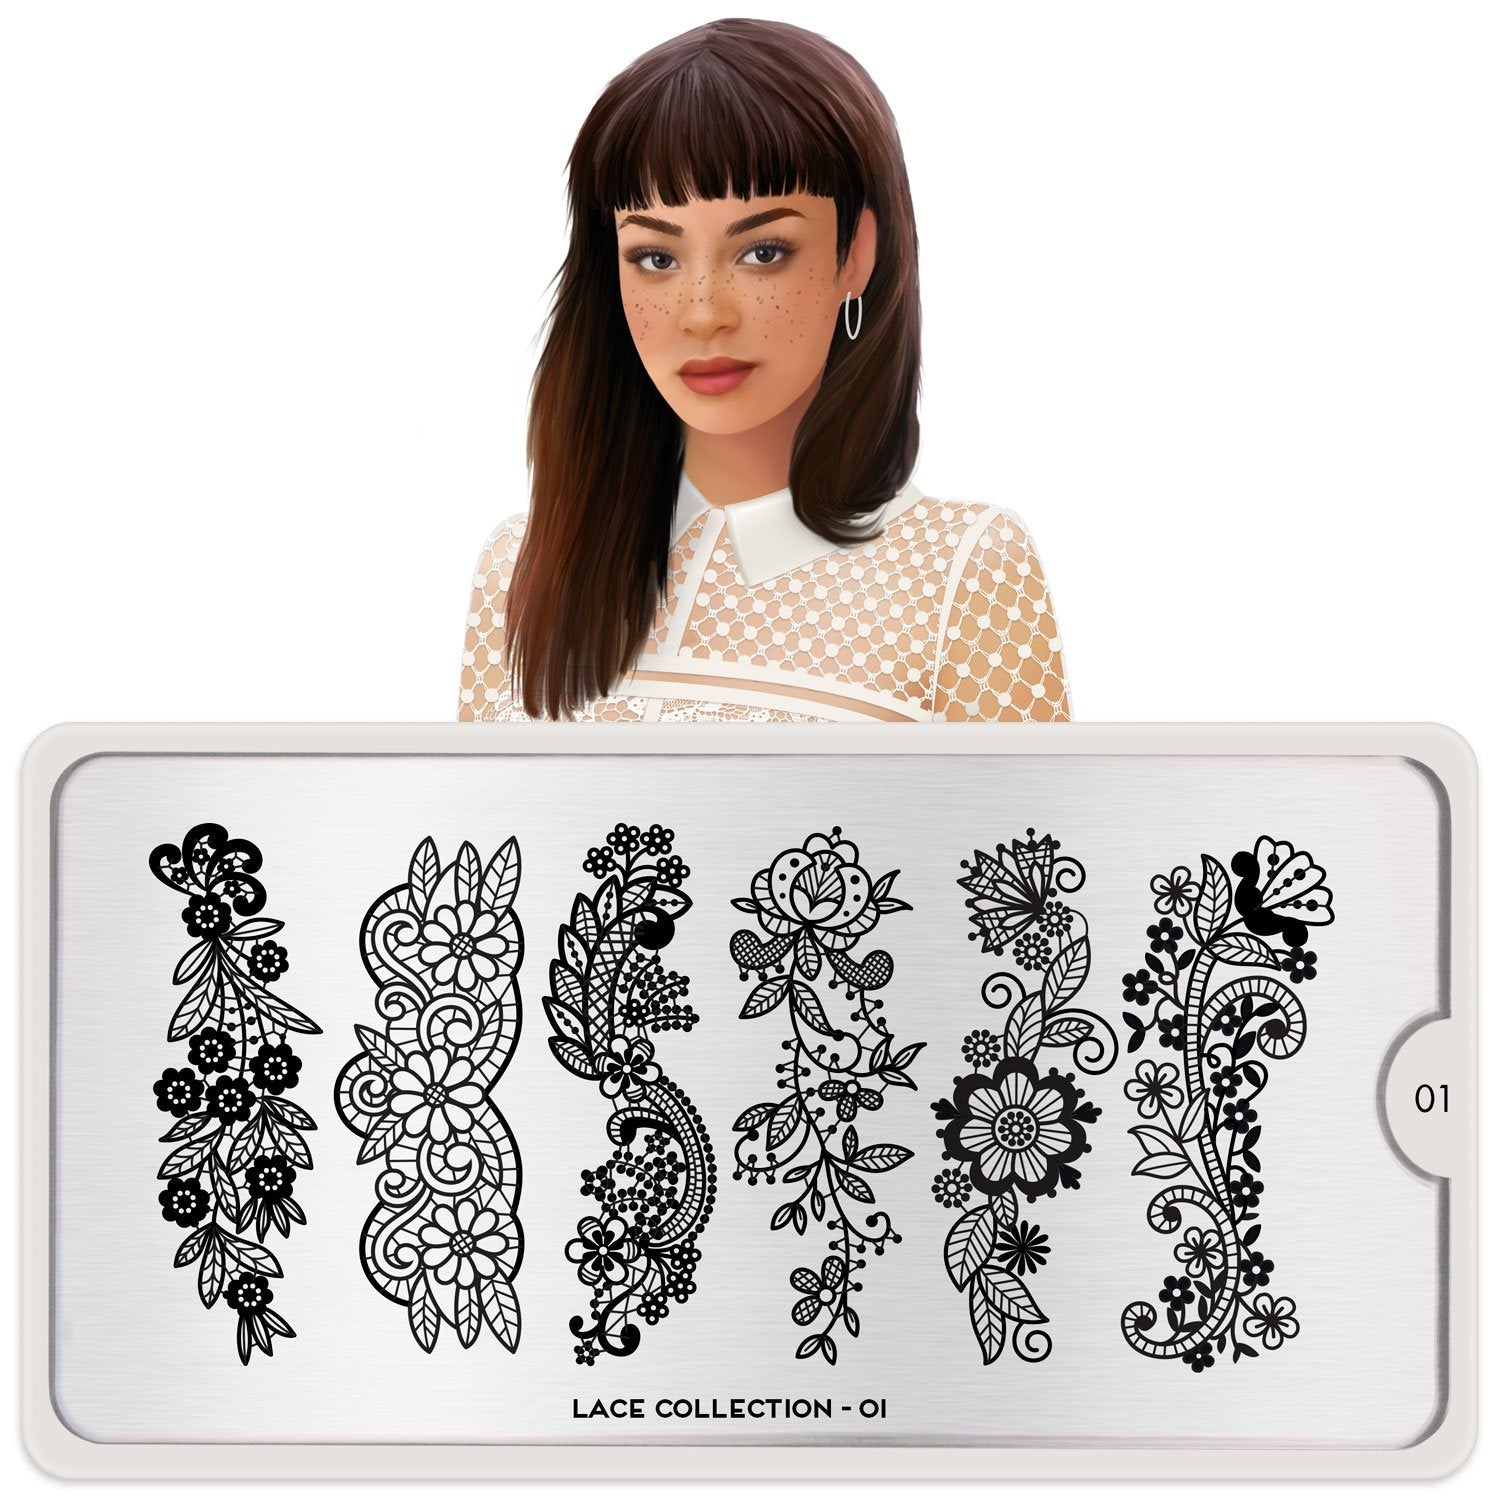 MoYou London Lace 01 stamping plate